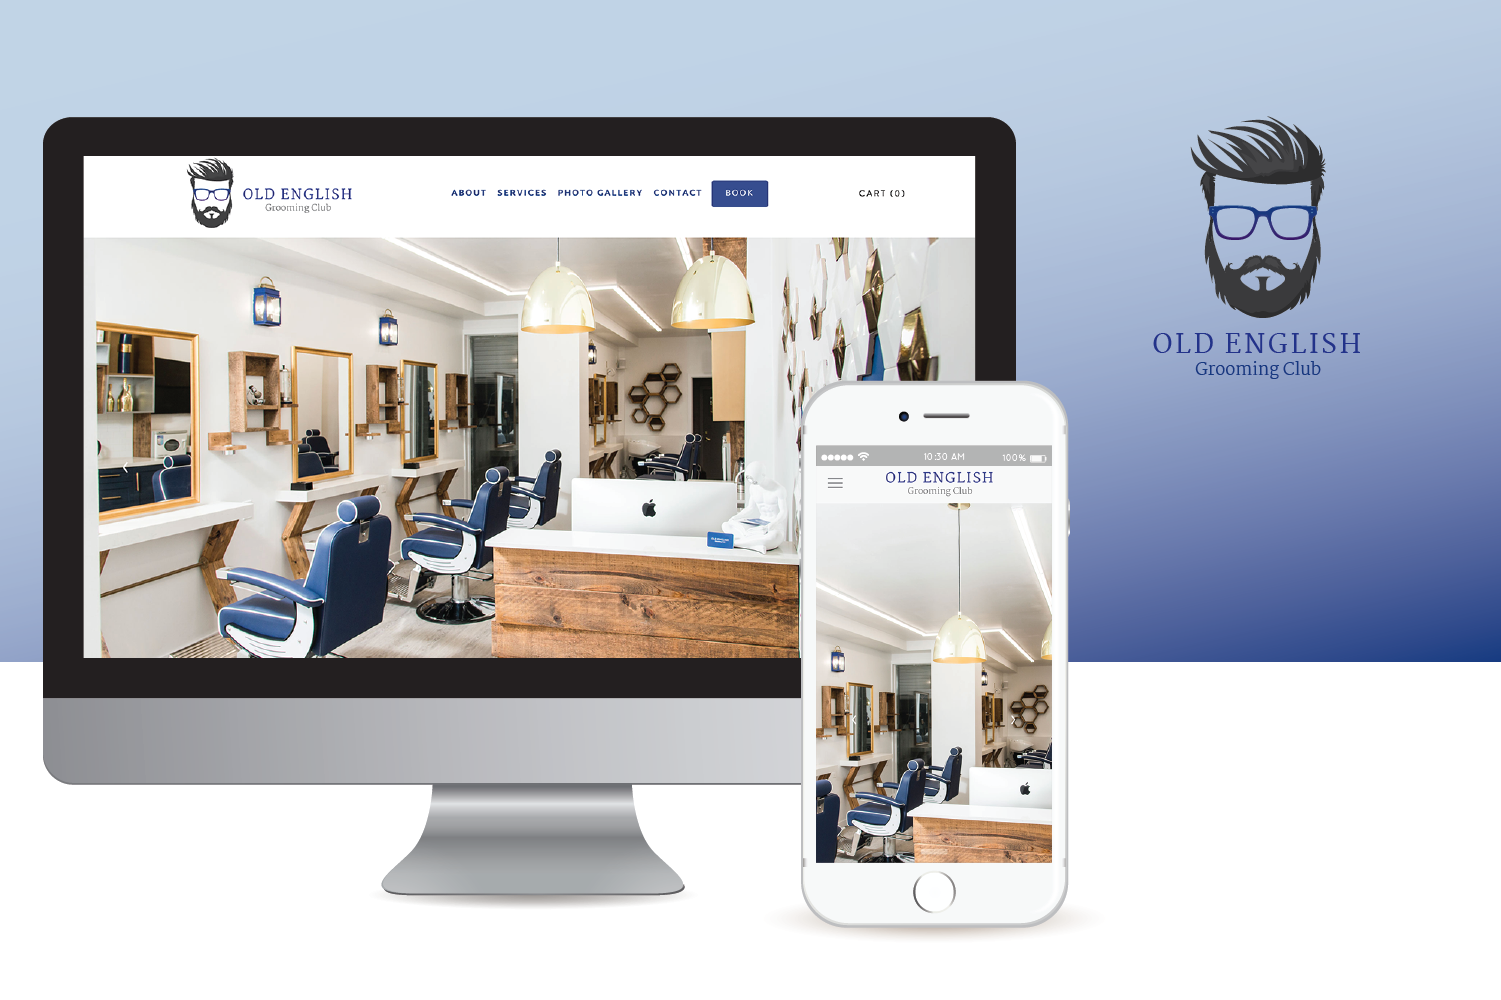 Old English Grooming Club Website